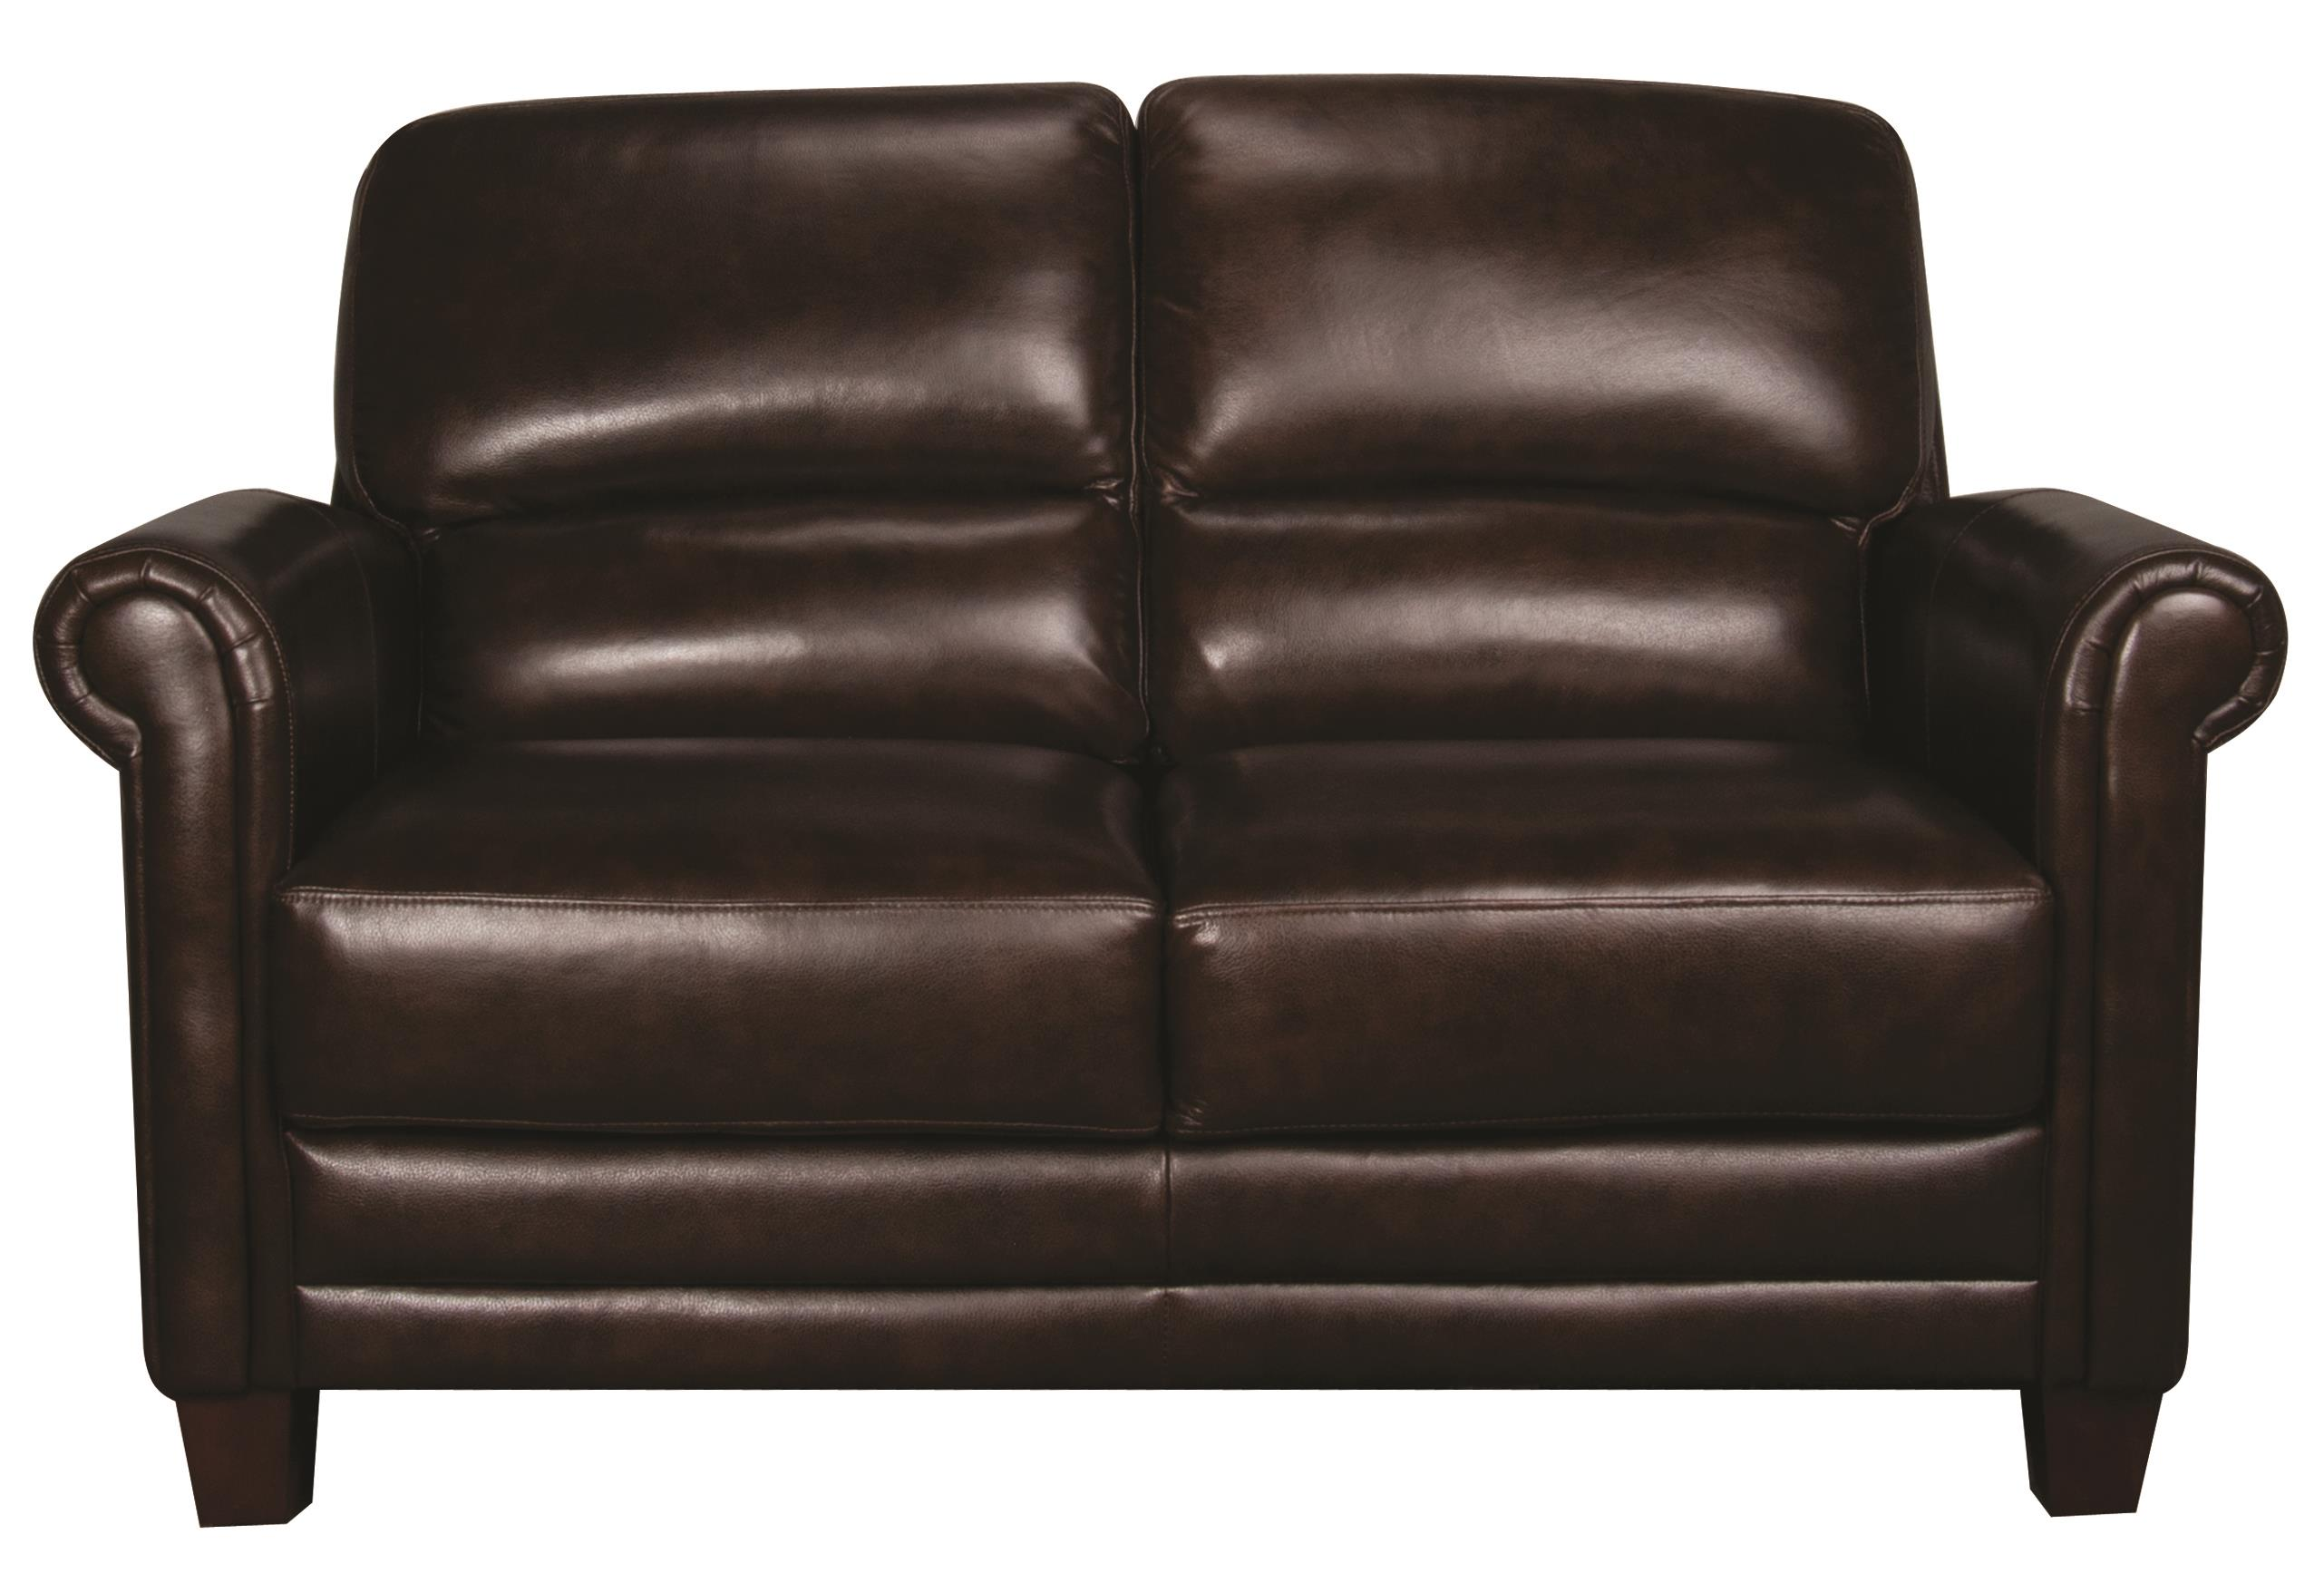 Morris Home Furnishings Victor Victor 100% Leather Loveseat - Item Number: 106807083